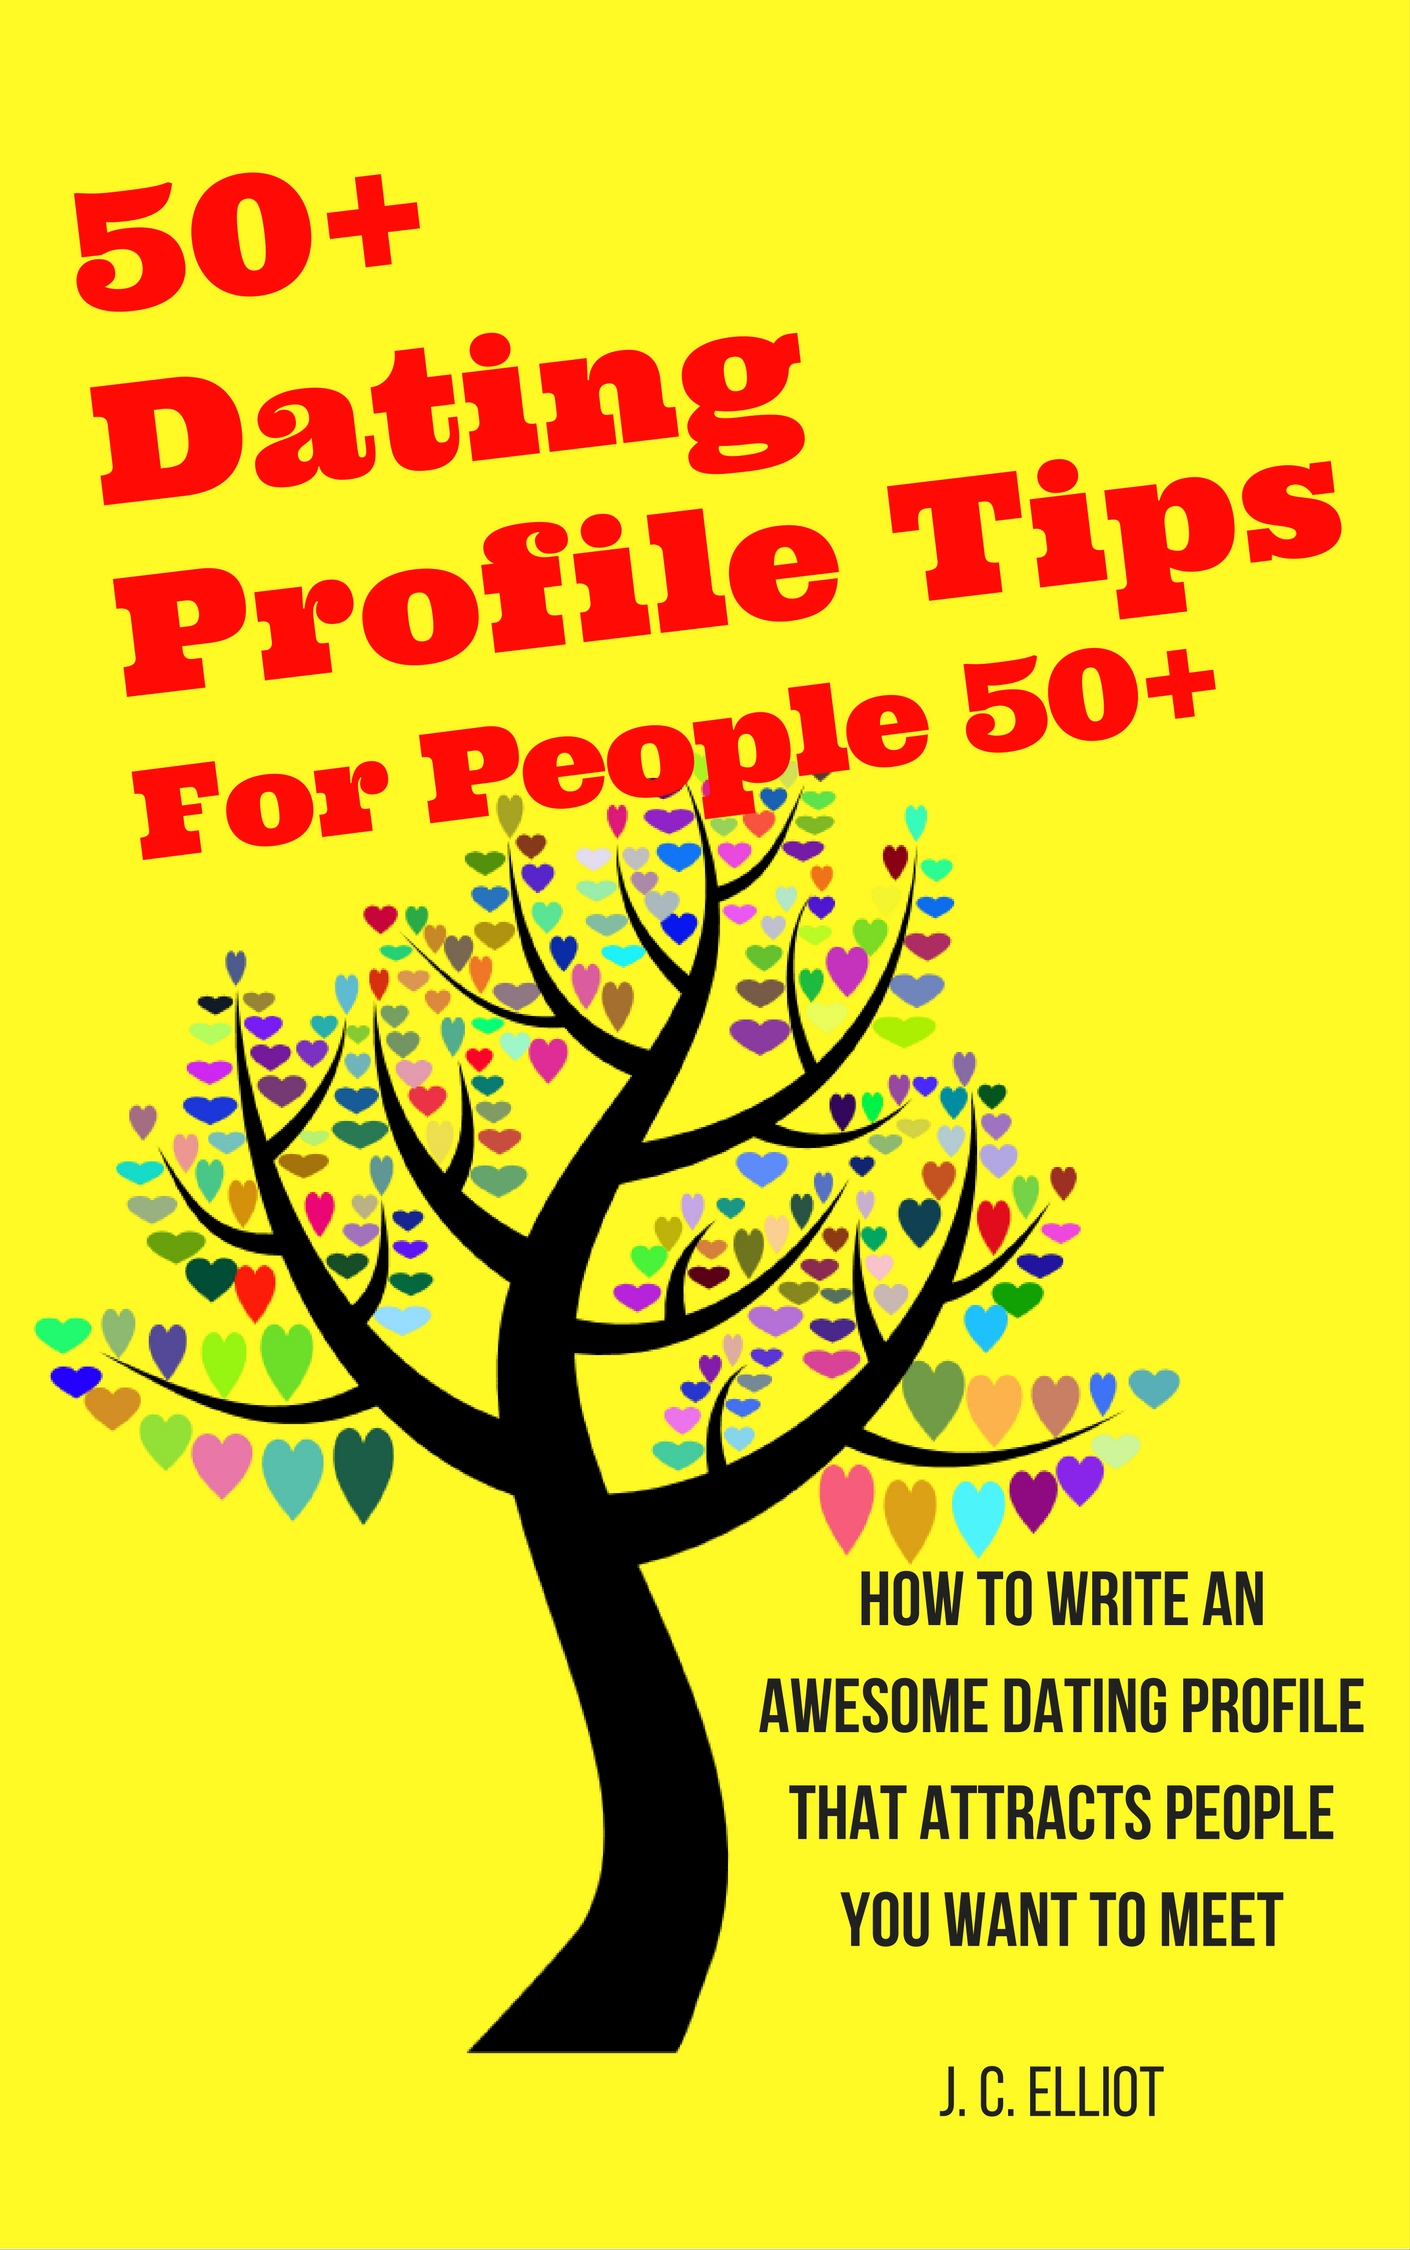 dating profile title ideas Make the most of your online dating profile and discover how to spot a great potential date with these top tips from the experts.